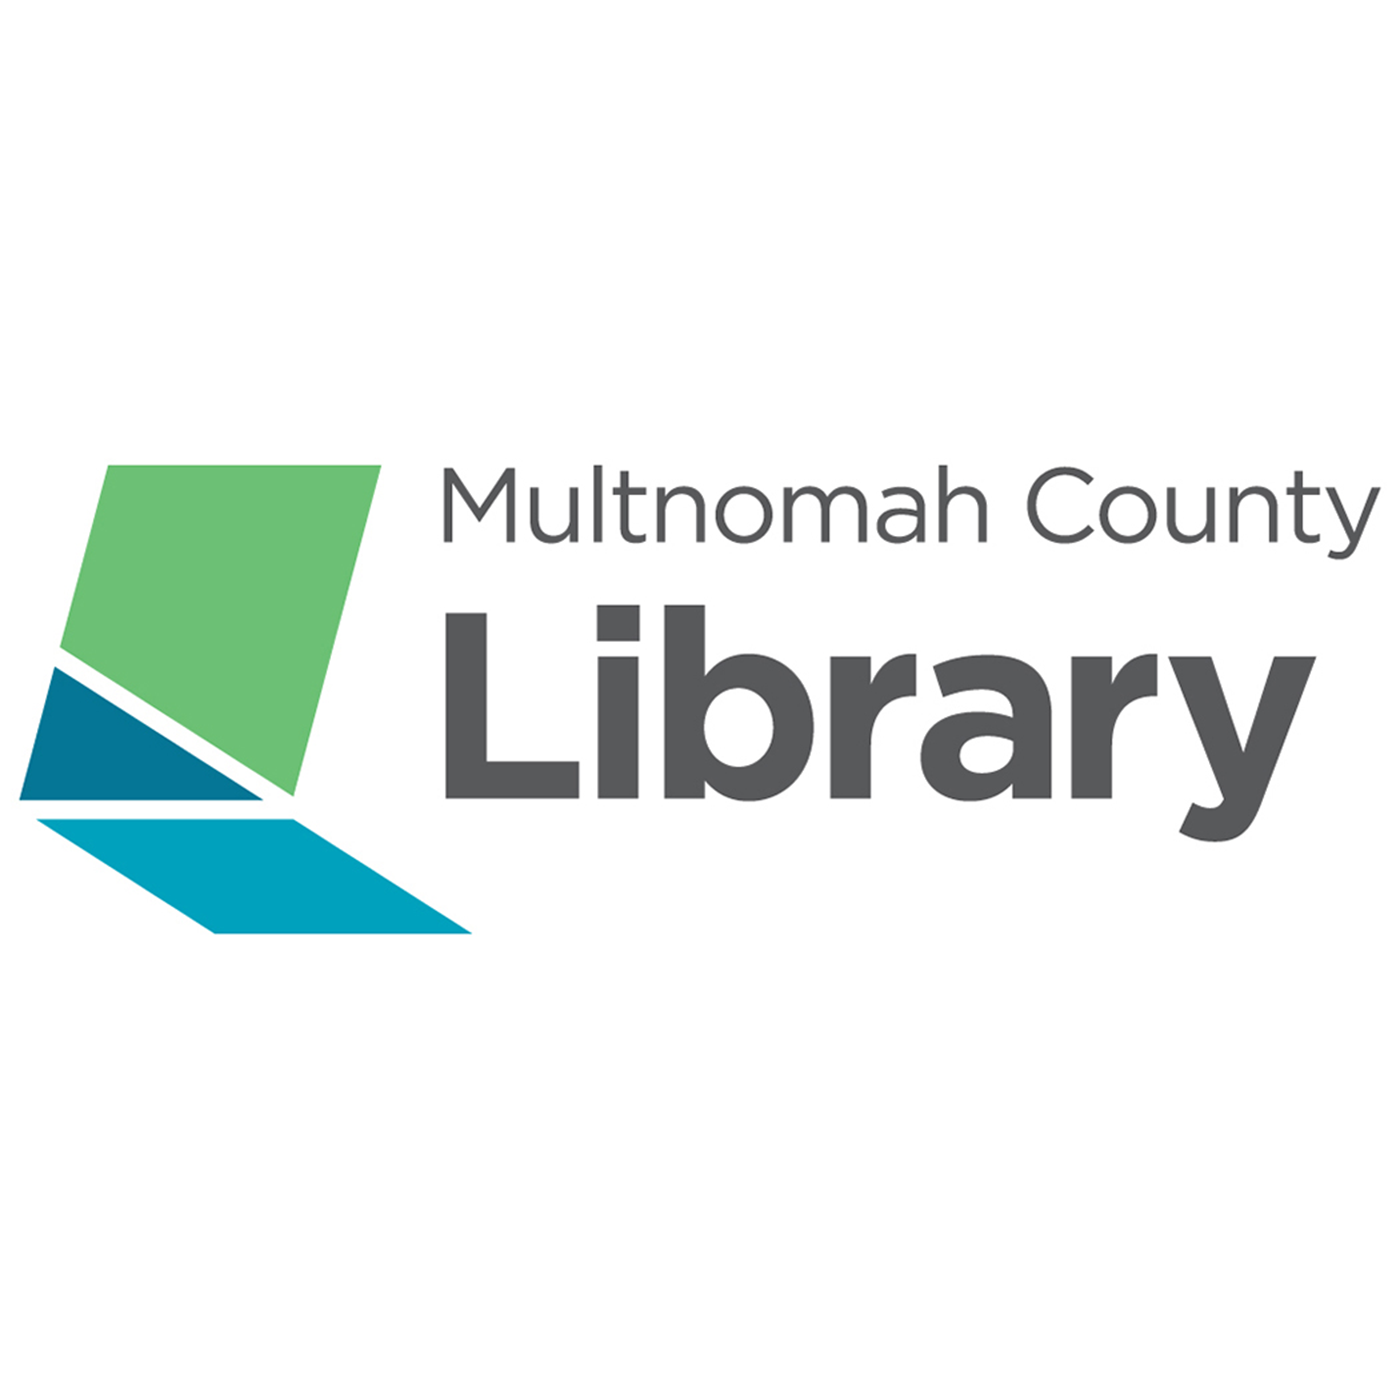 Multnomah County Library Podcasts show art